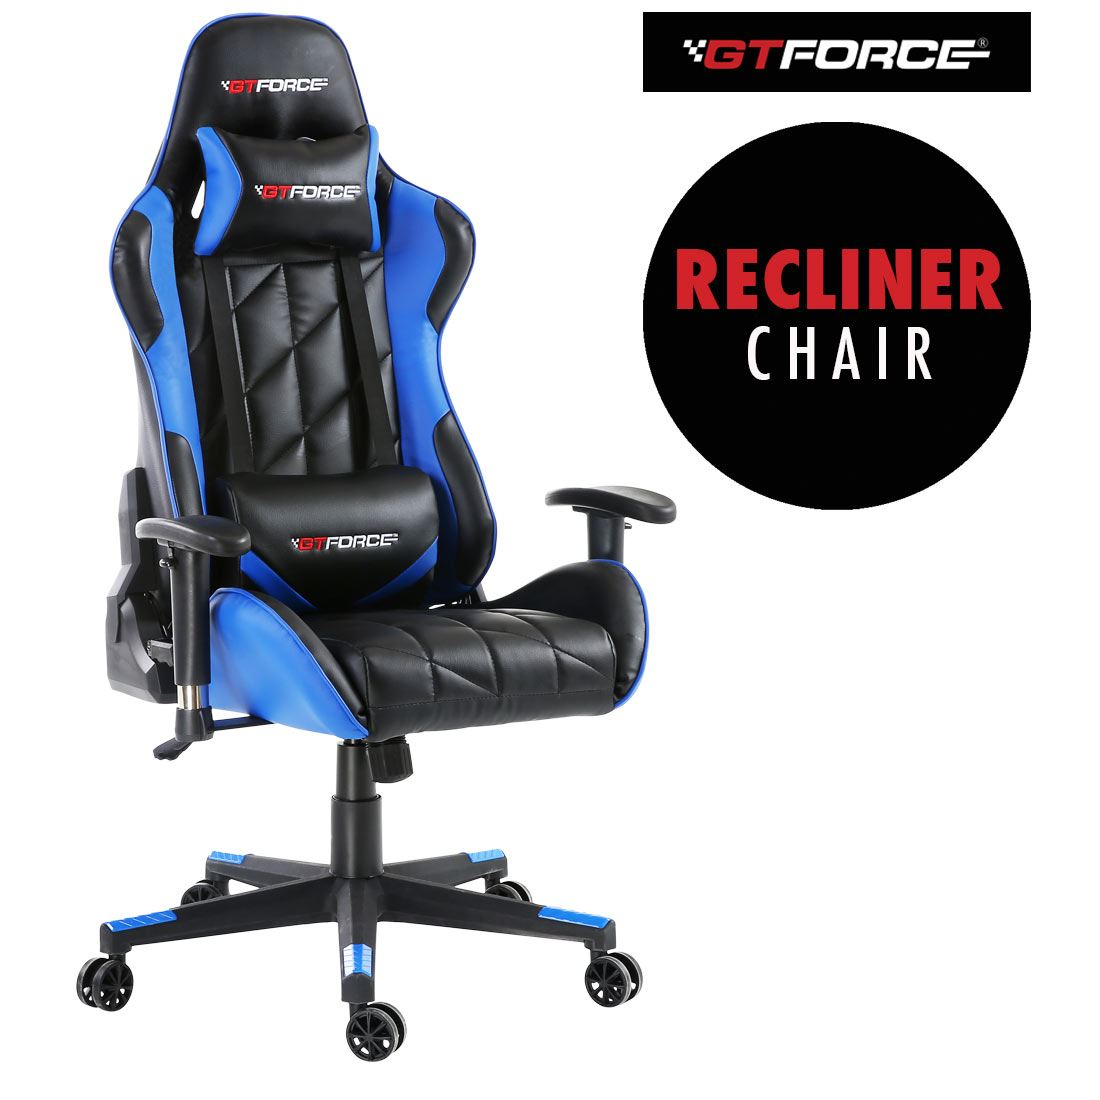 GTFORCE PRO GT RECLINING SPORTS RACING GAMING OFFICE DESK